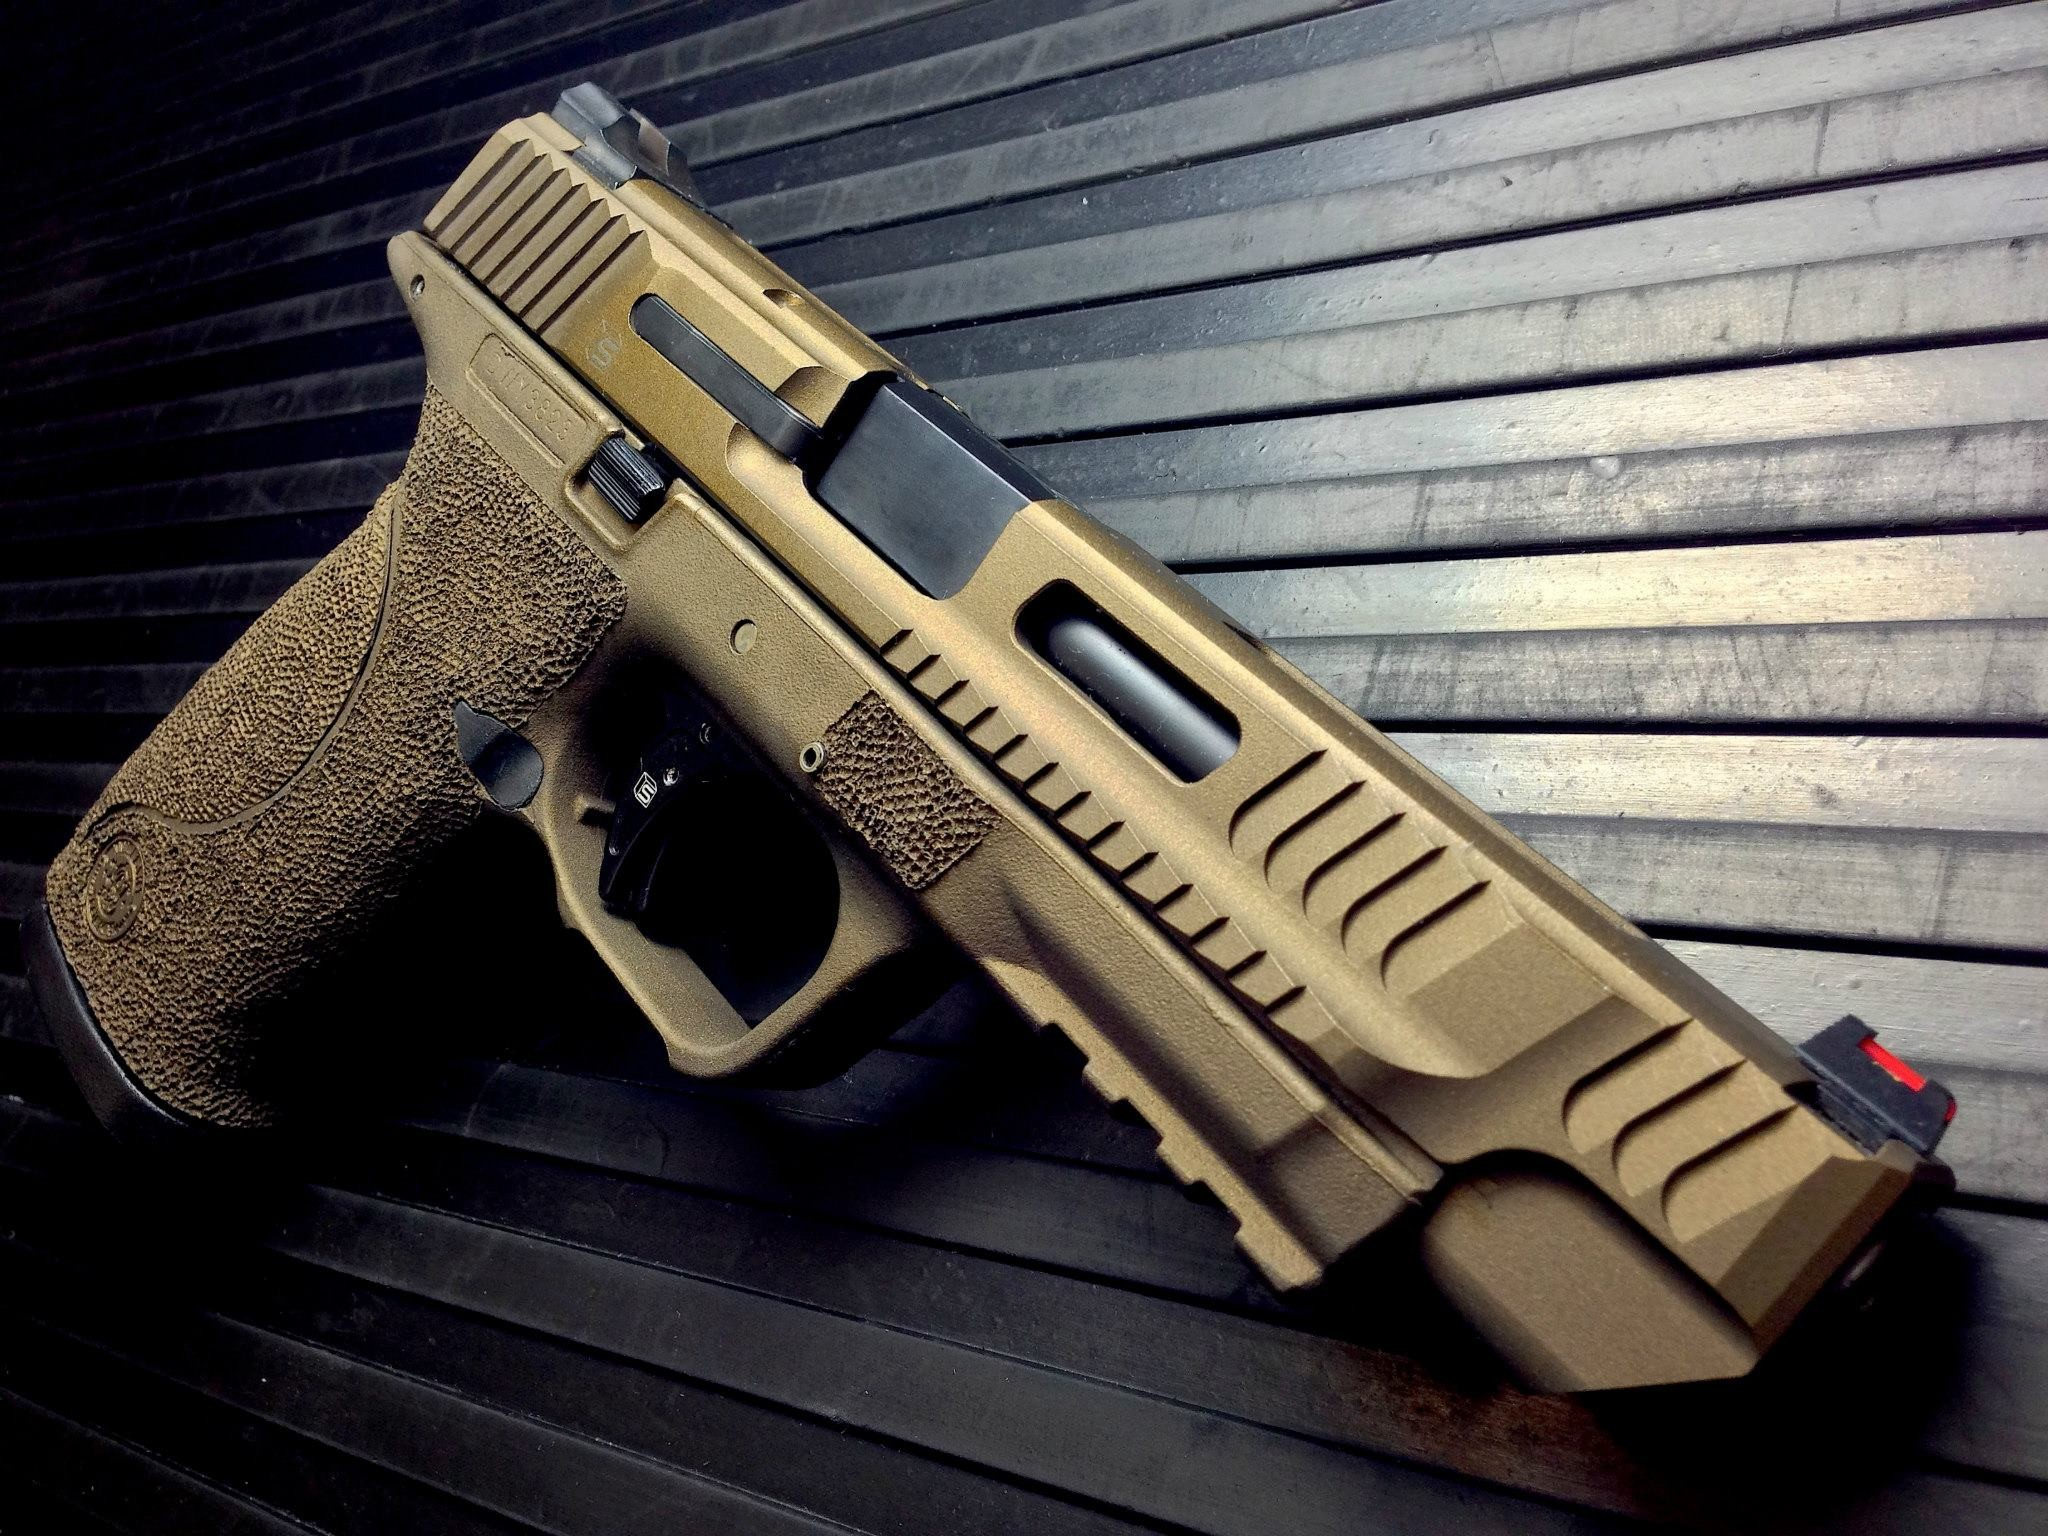 2048x1536 Salient Arms International Smith and Wesson M & P Tier One Longslide.